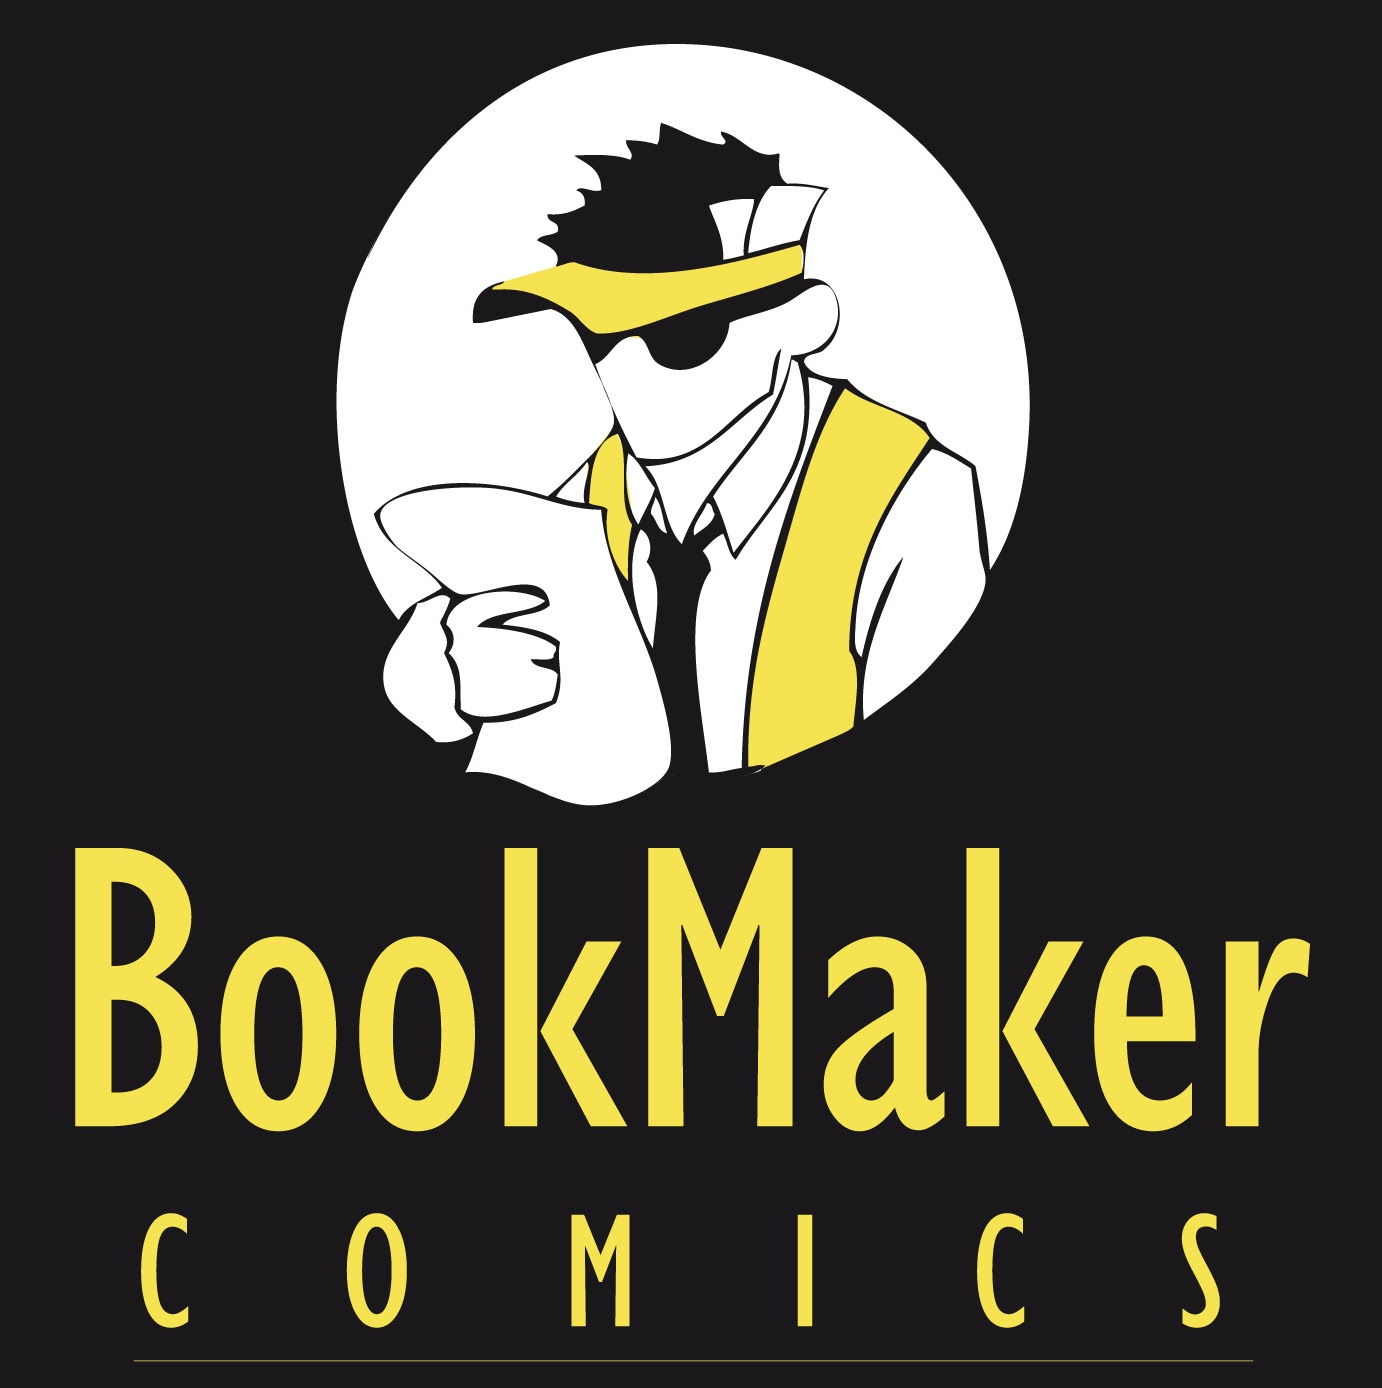 BookMaker Comics - Fanpage